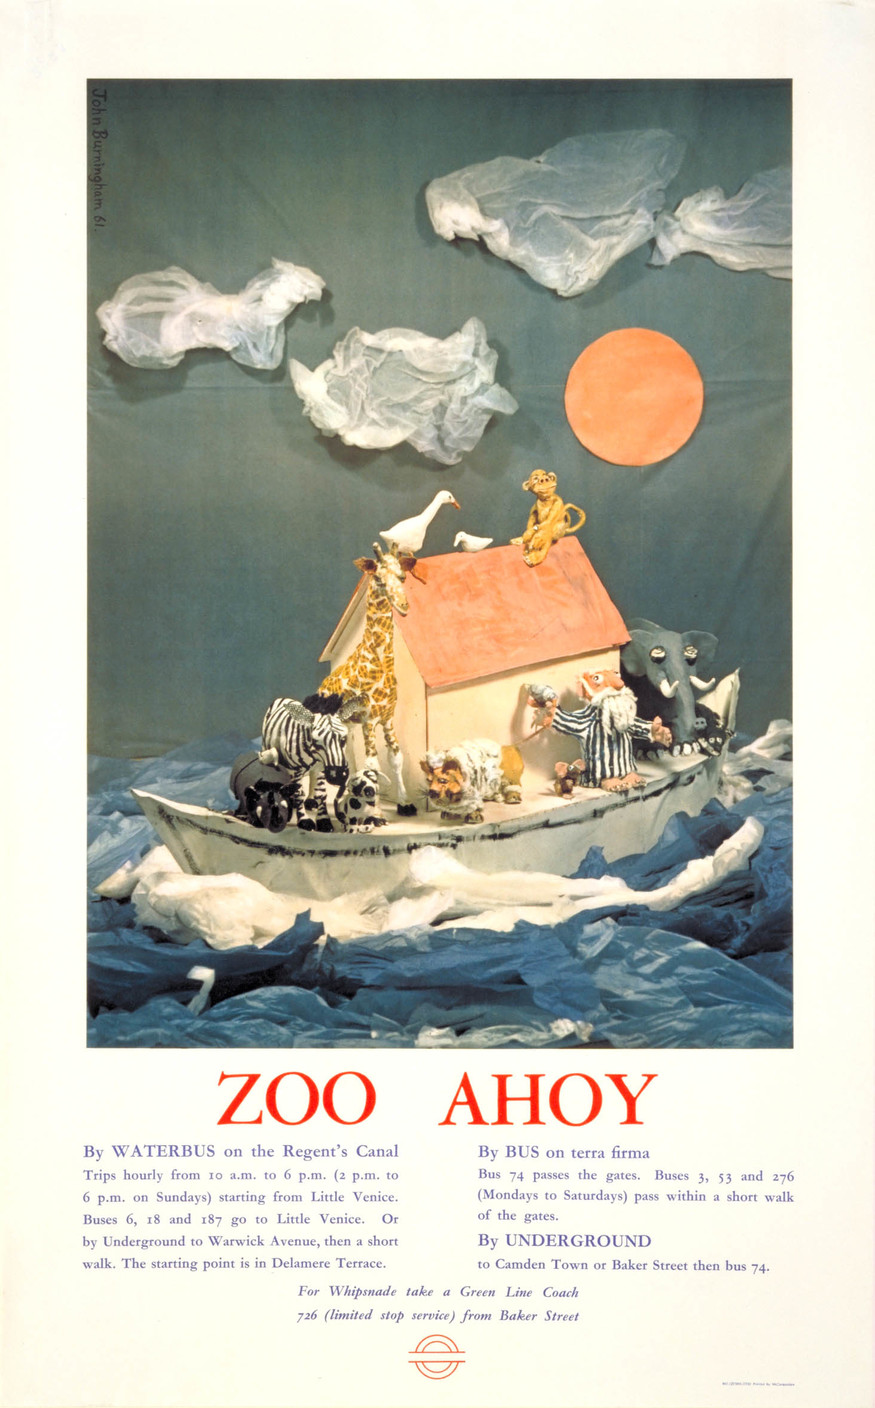 Zoo ahoy, by John Burningham, 1961